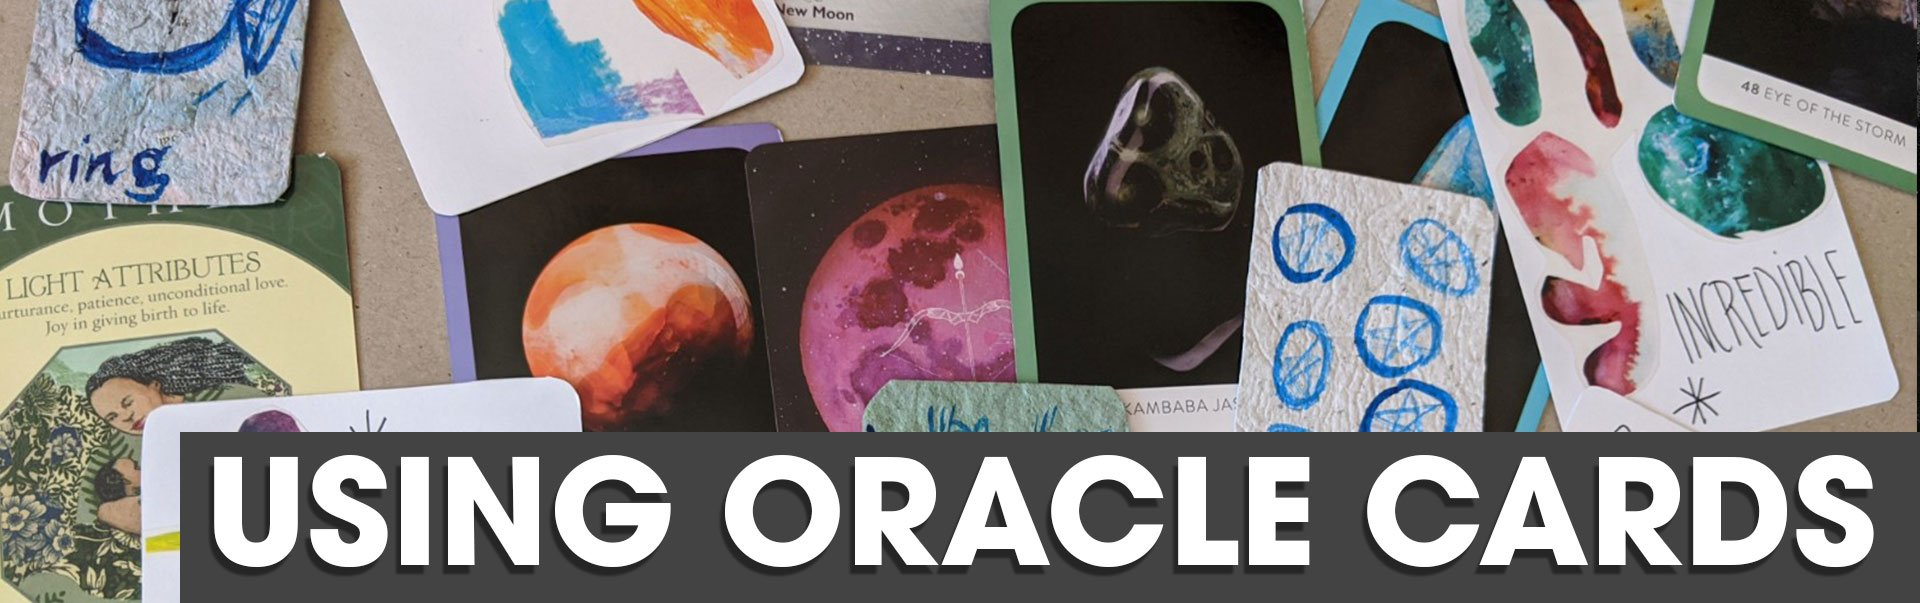 Kat Wojdyla and using oracle cards at the sir arthur conan doyle centre